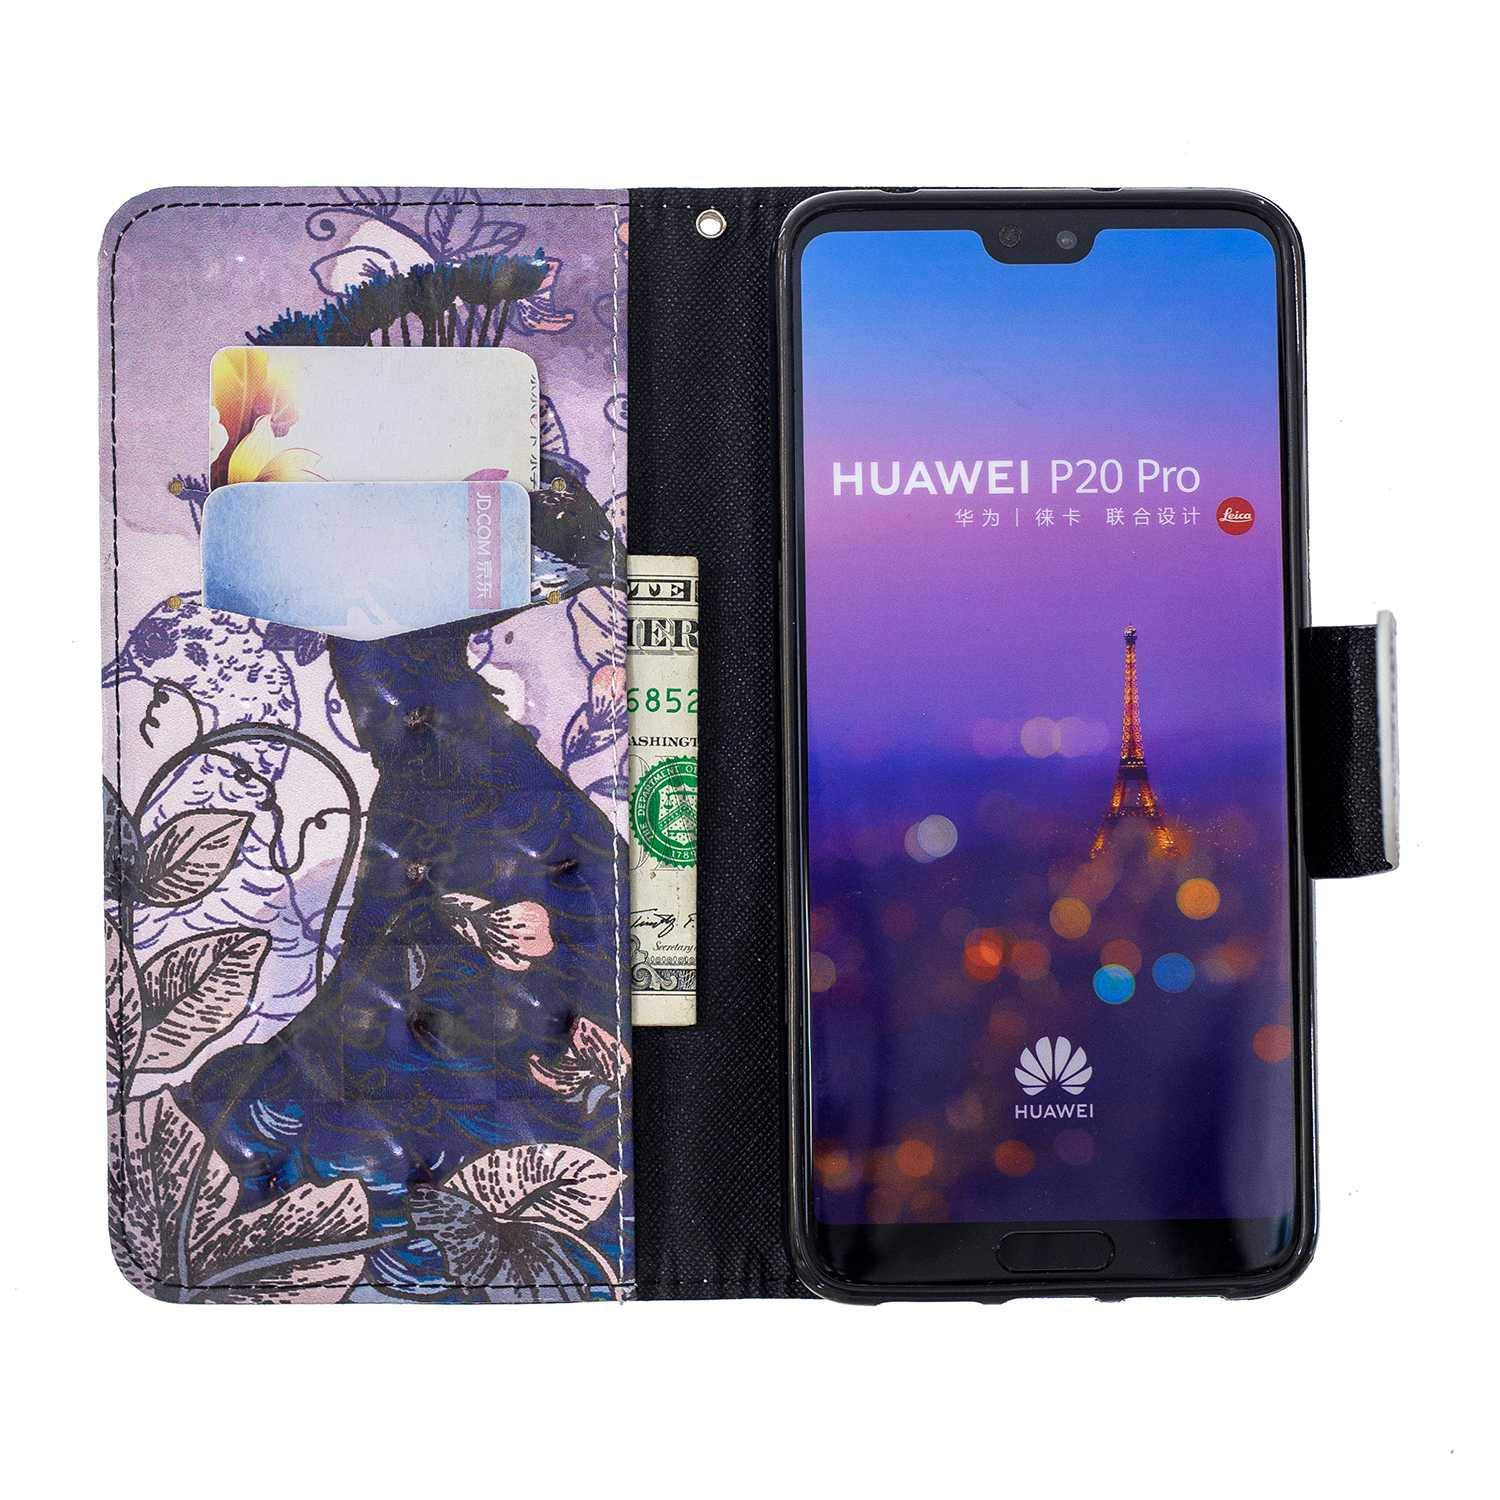 CUSKING Huawei P20 Pro Case, Premium 3D Design Wallet Case Stand Flip Case with Card Holders and Magnetic Closure, Multi-Functional Shockproof Case for Huawei P20 Pro - Peacock by CUSKING (Image #3)